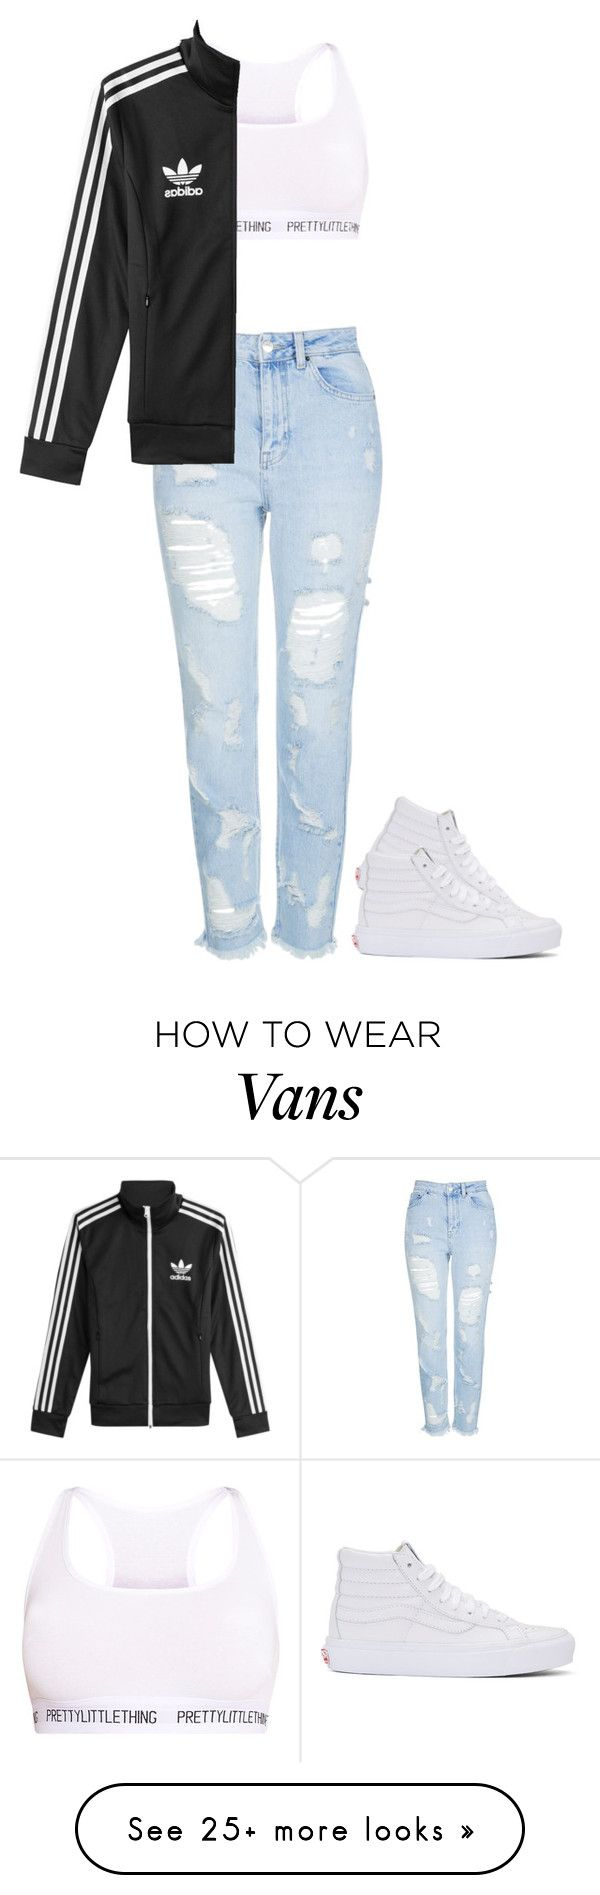 """Mall outfit"" by okaysaraa on Polyvore featuring Topshop, Vans and adidas"